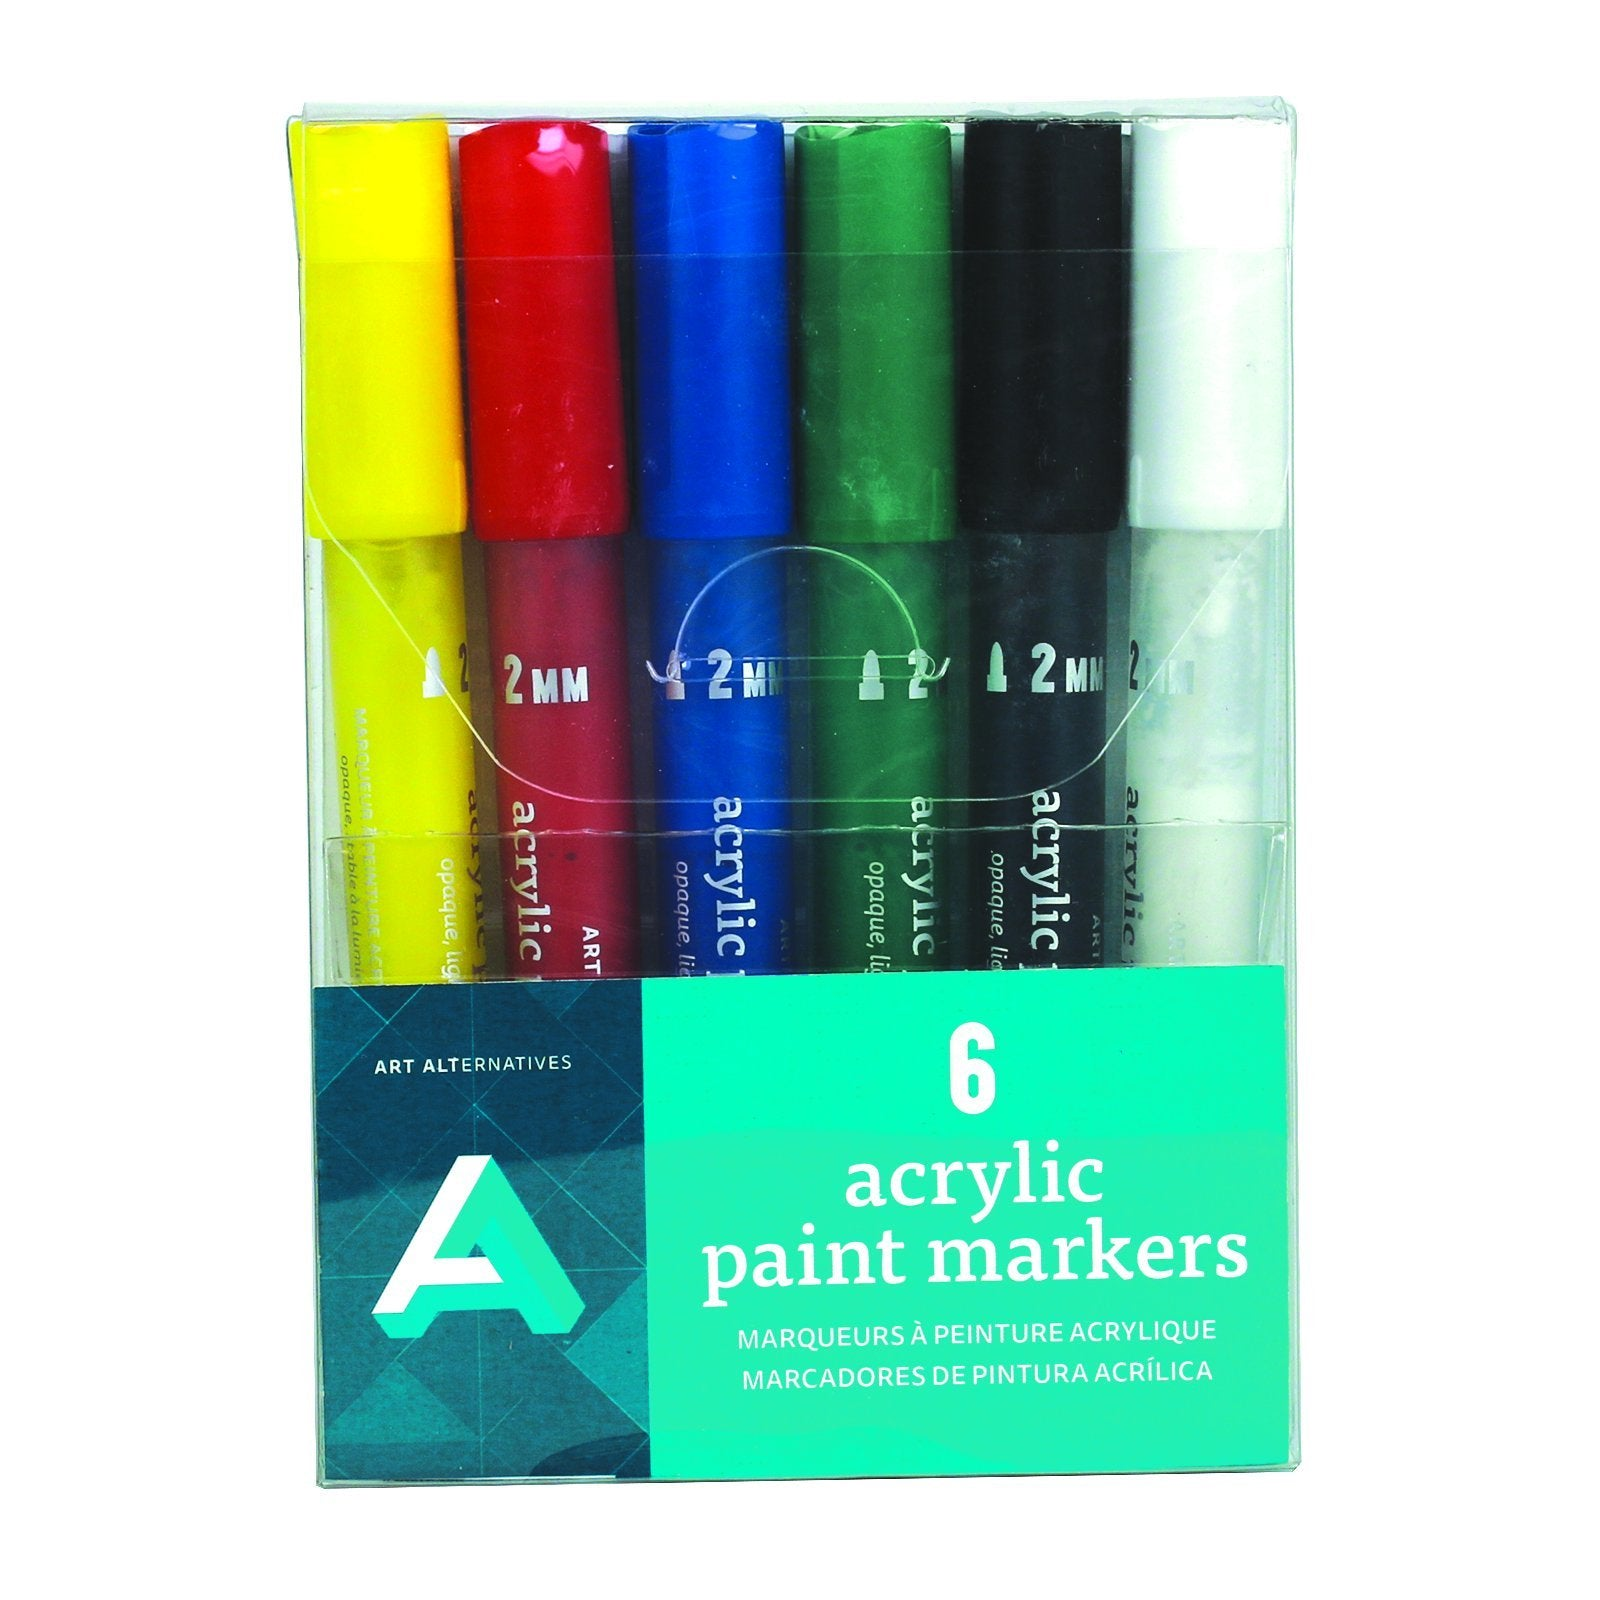 Art Alternatives Acrylic Paint Marker Set, 2mm, 6-Colors